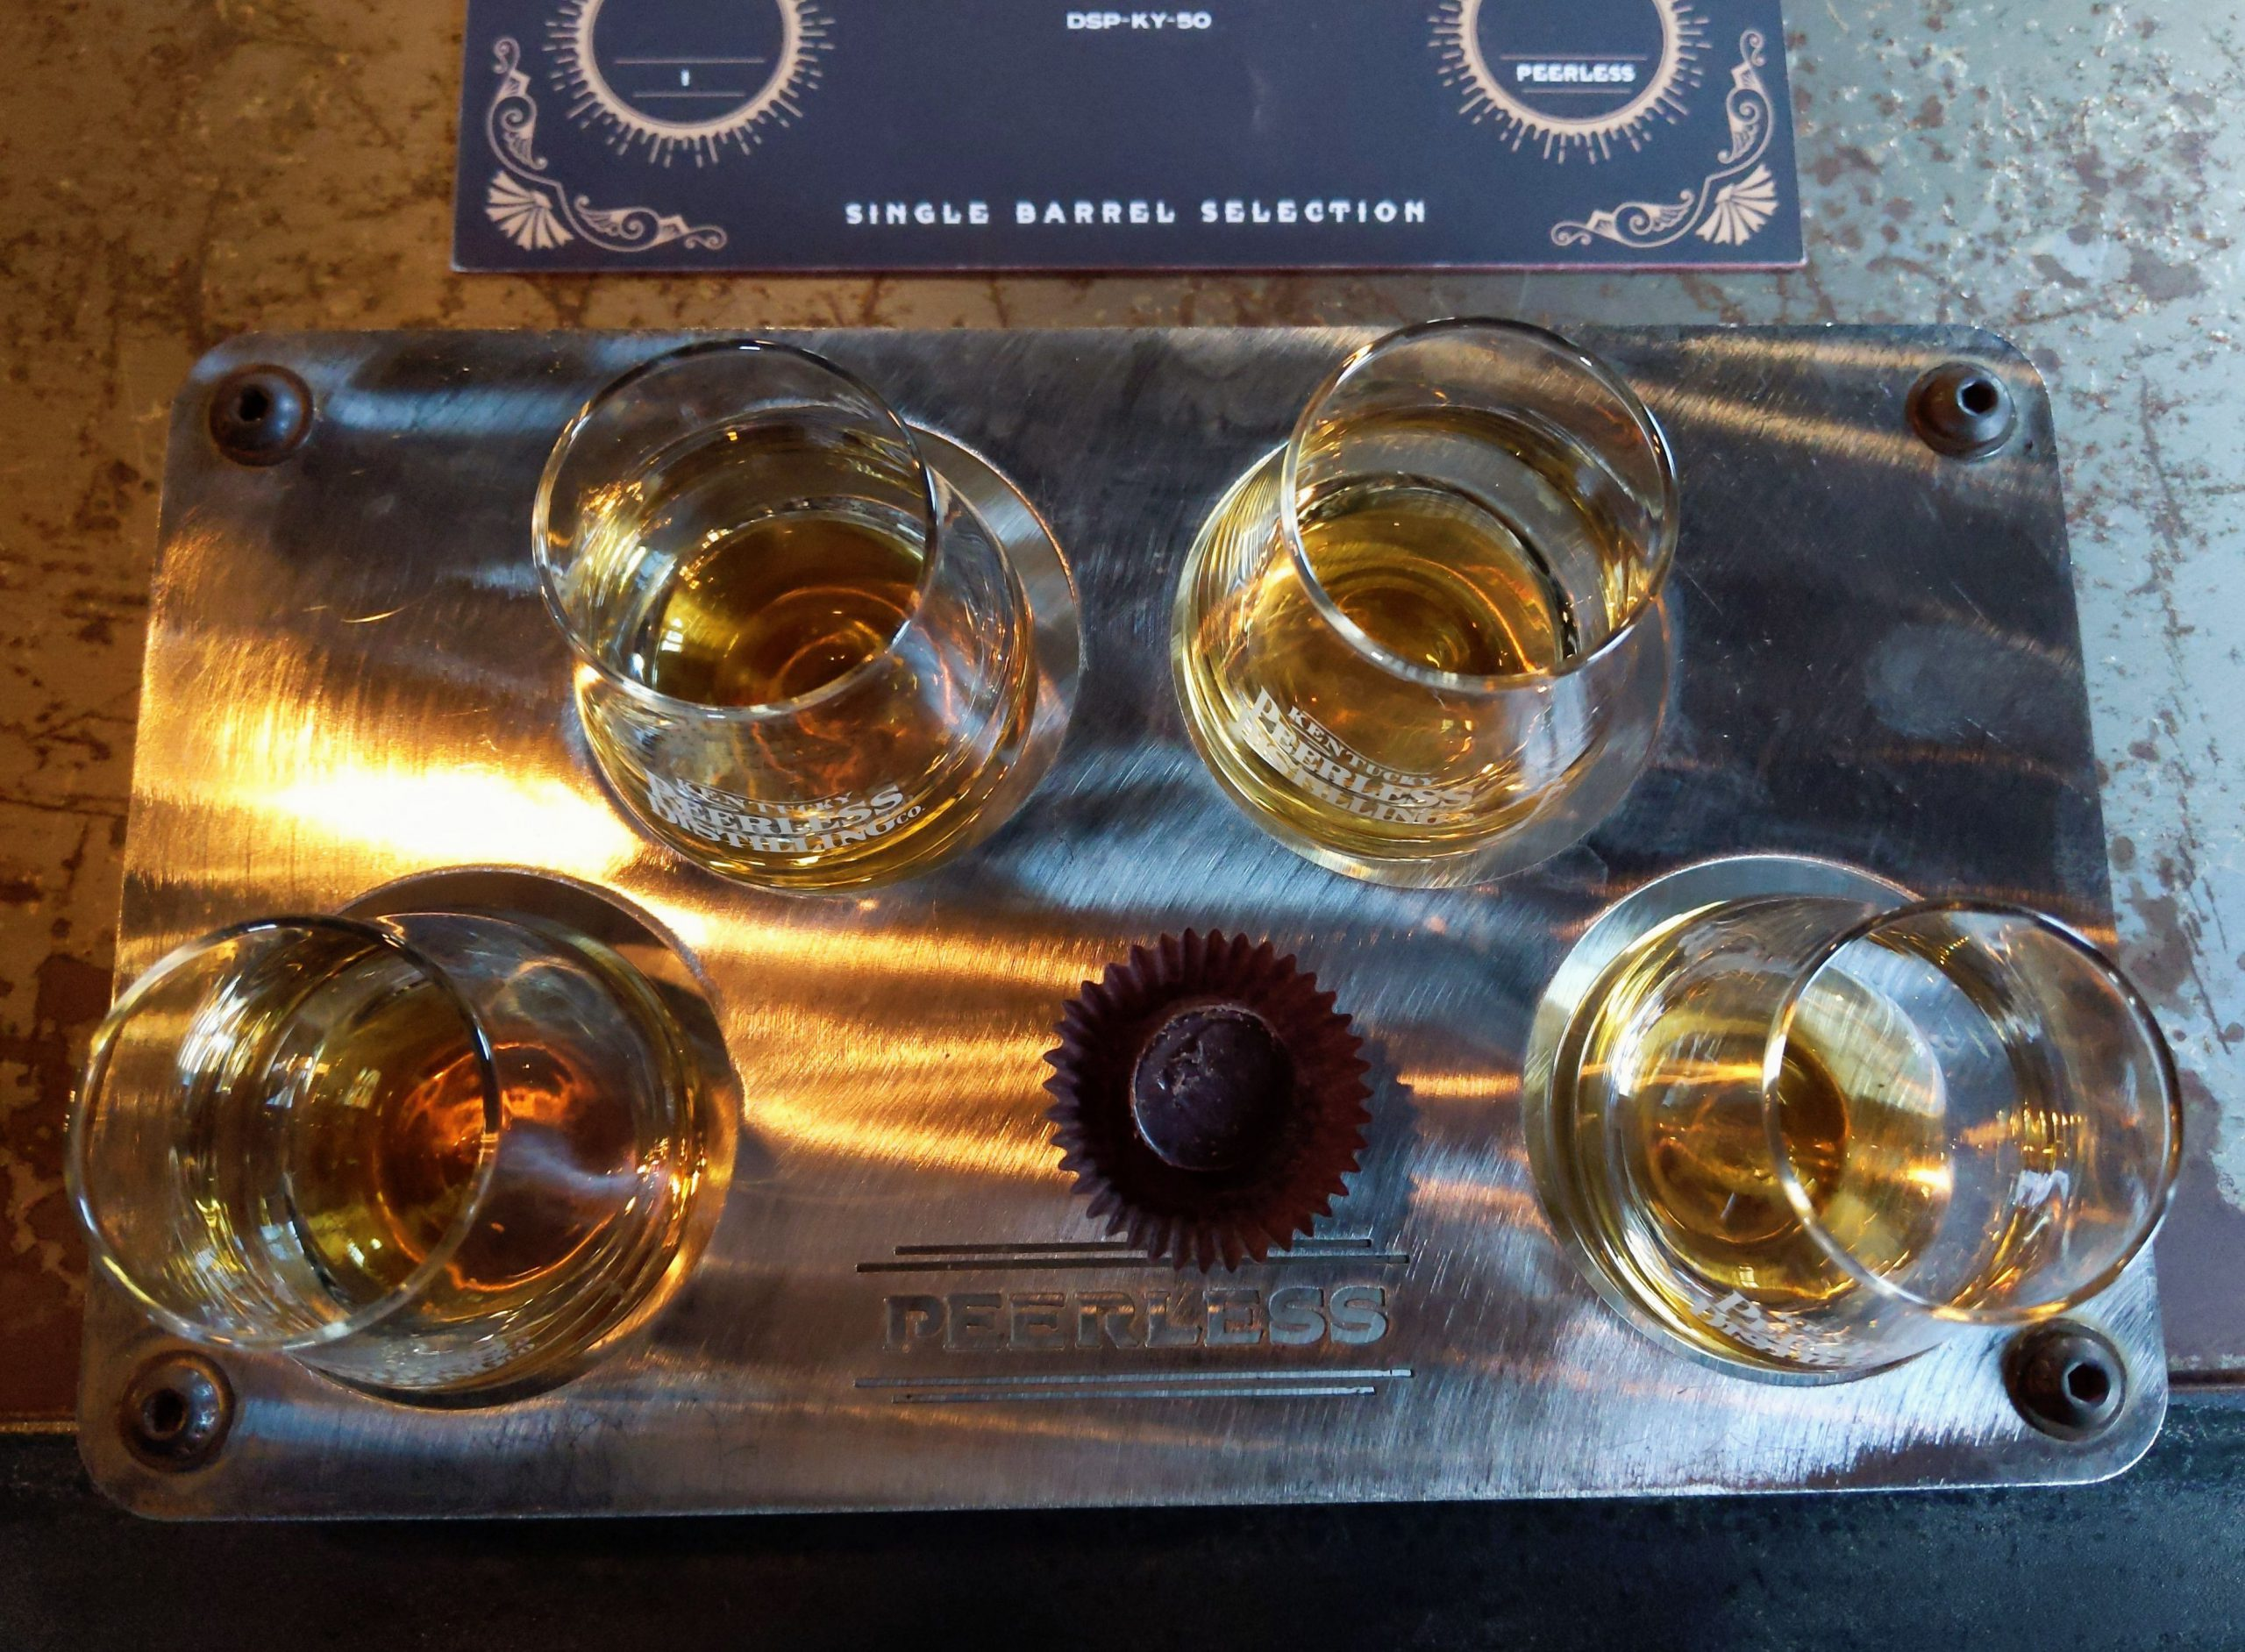 Peerless Distilling Single Barrel Tasting Selection